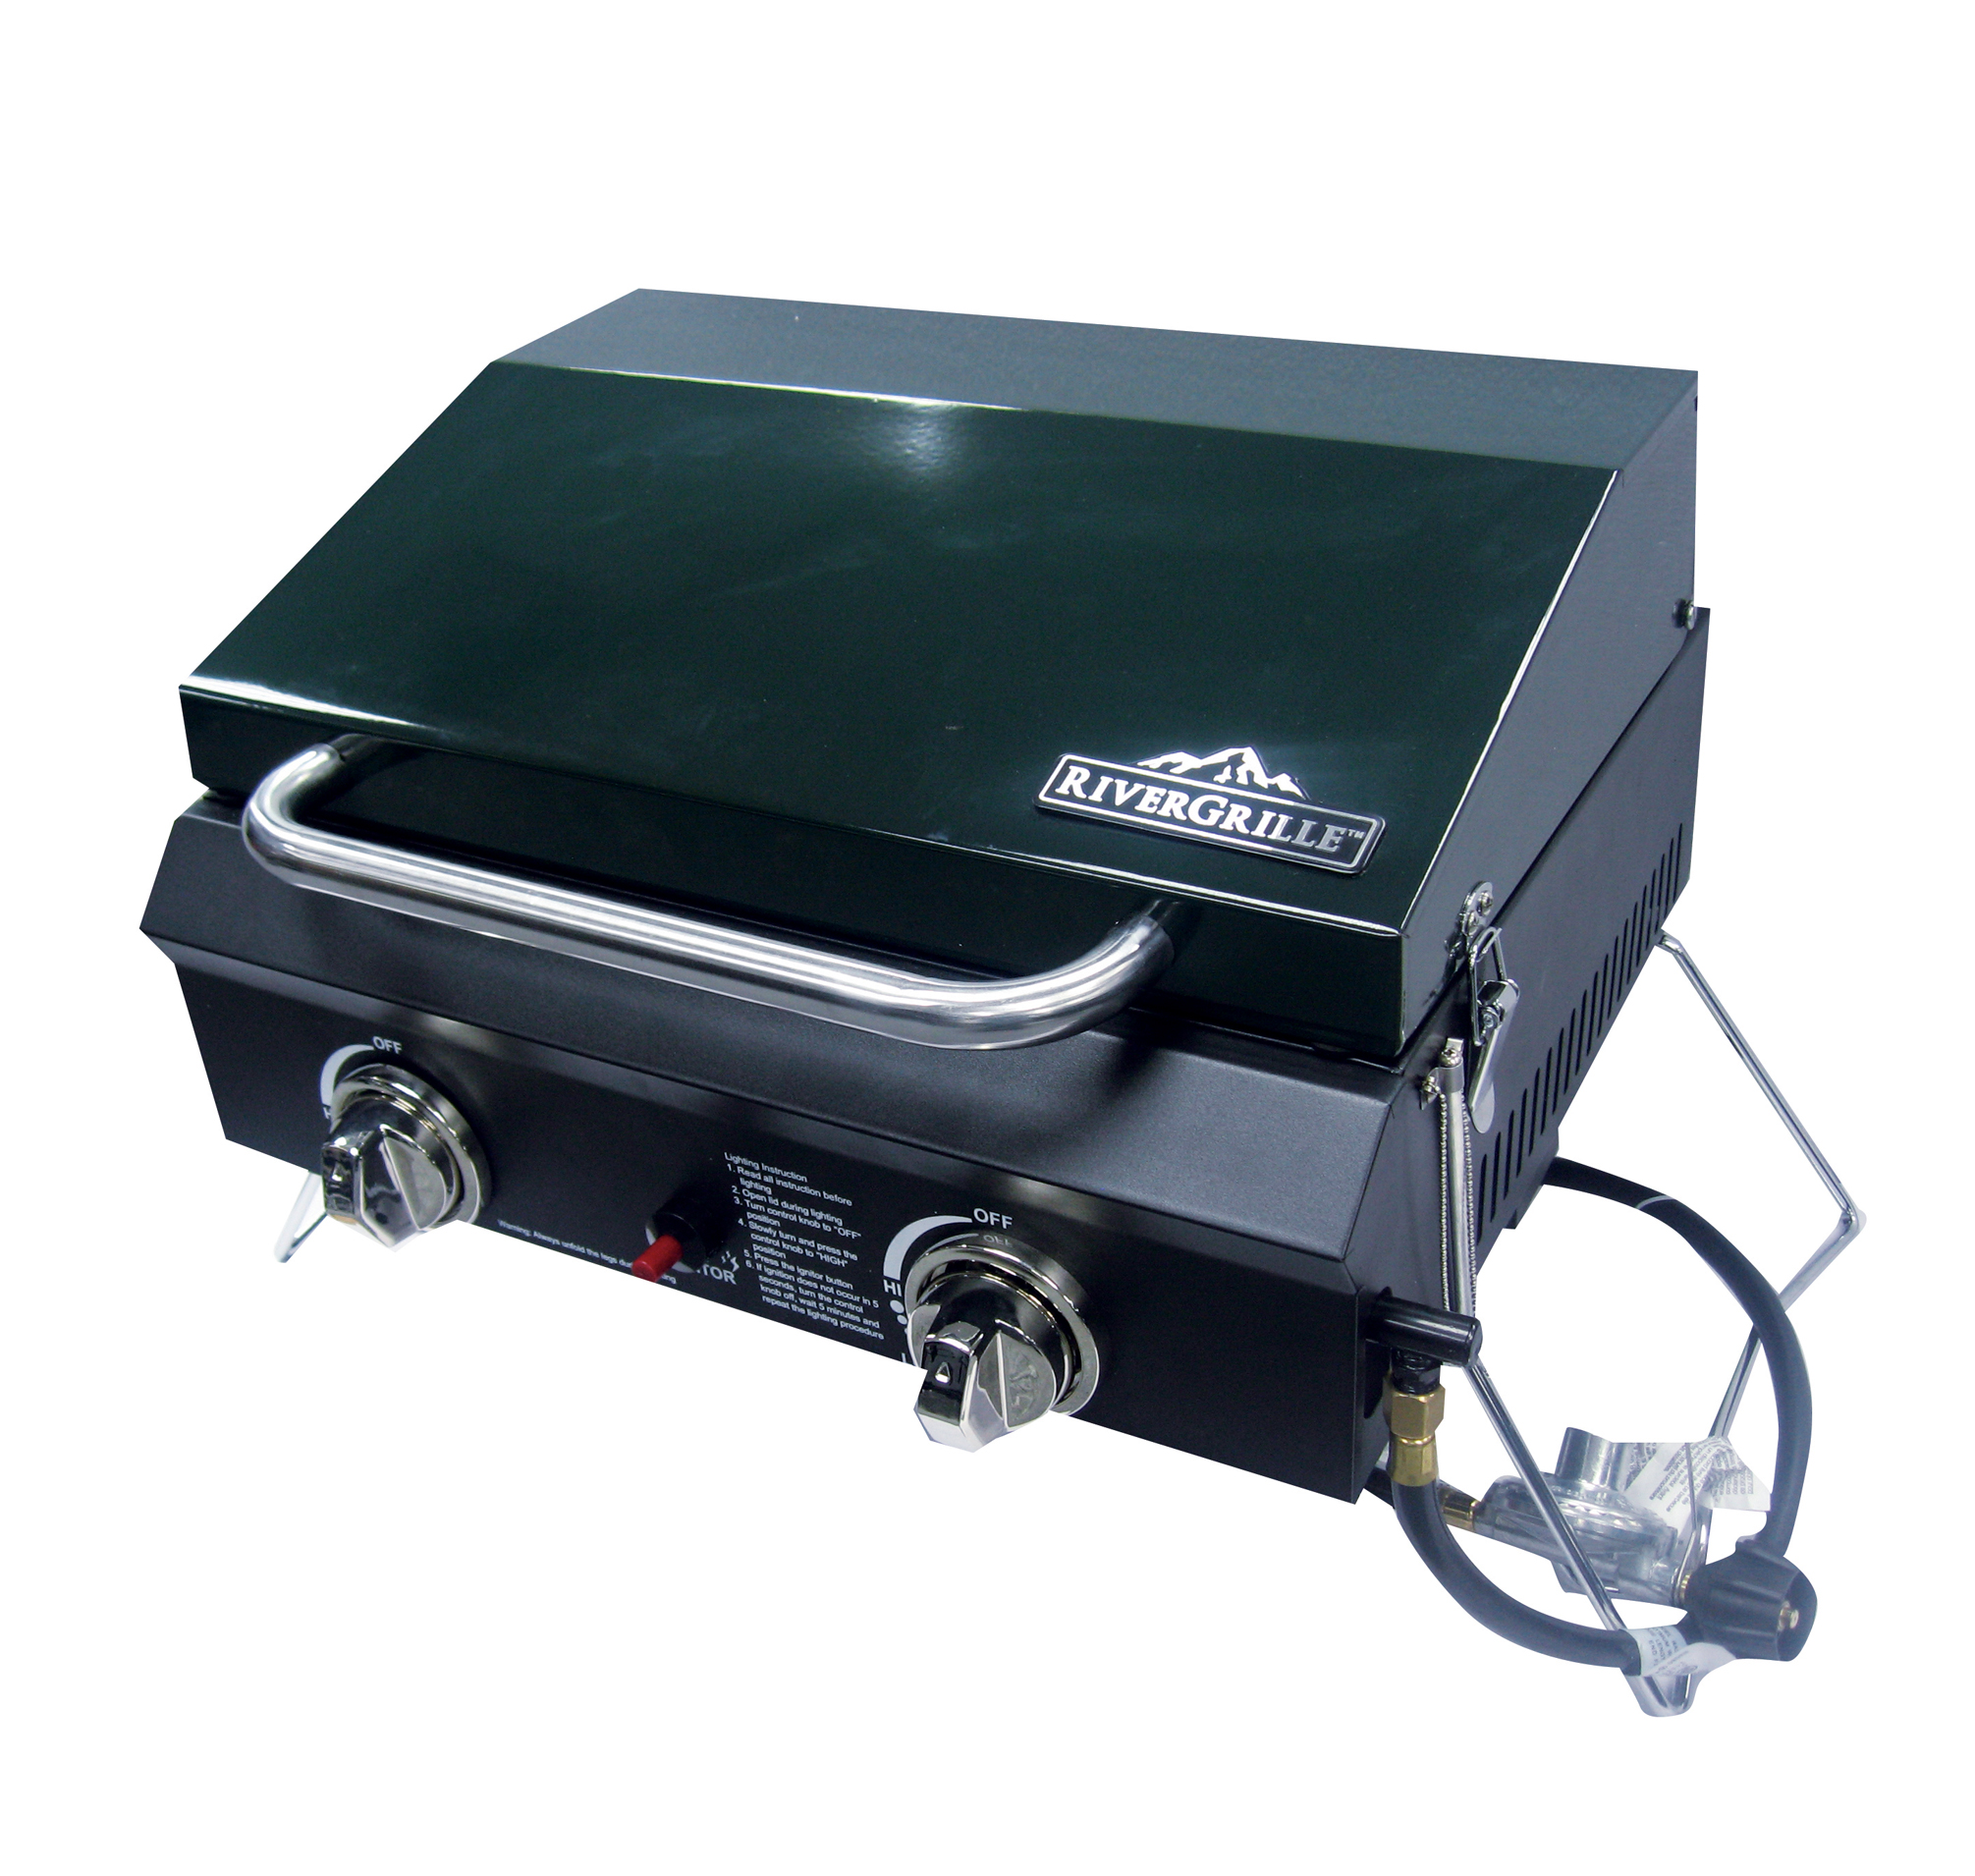 2 Burner Tabletop Gas Grill